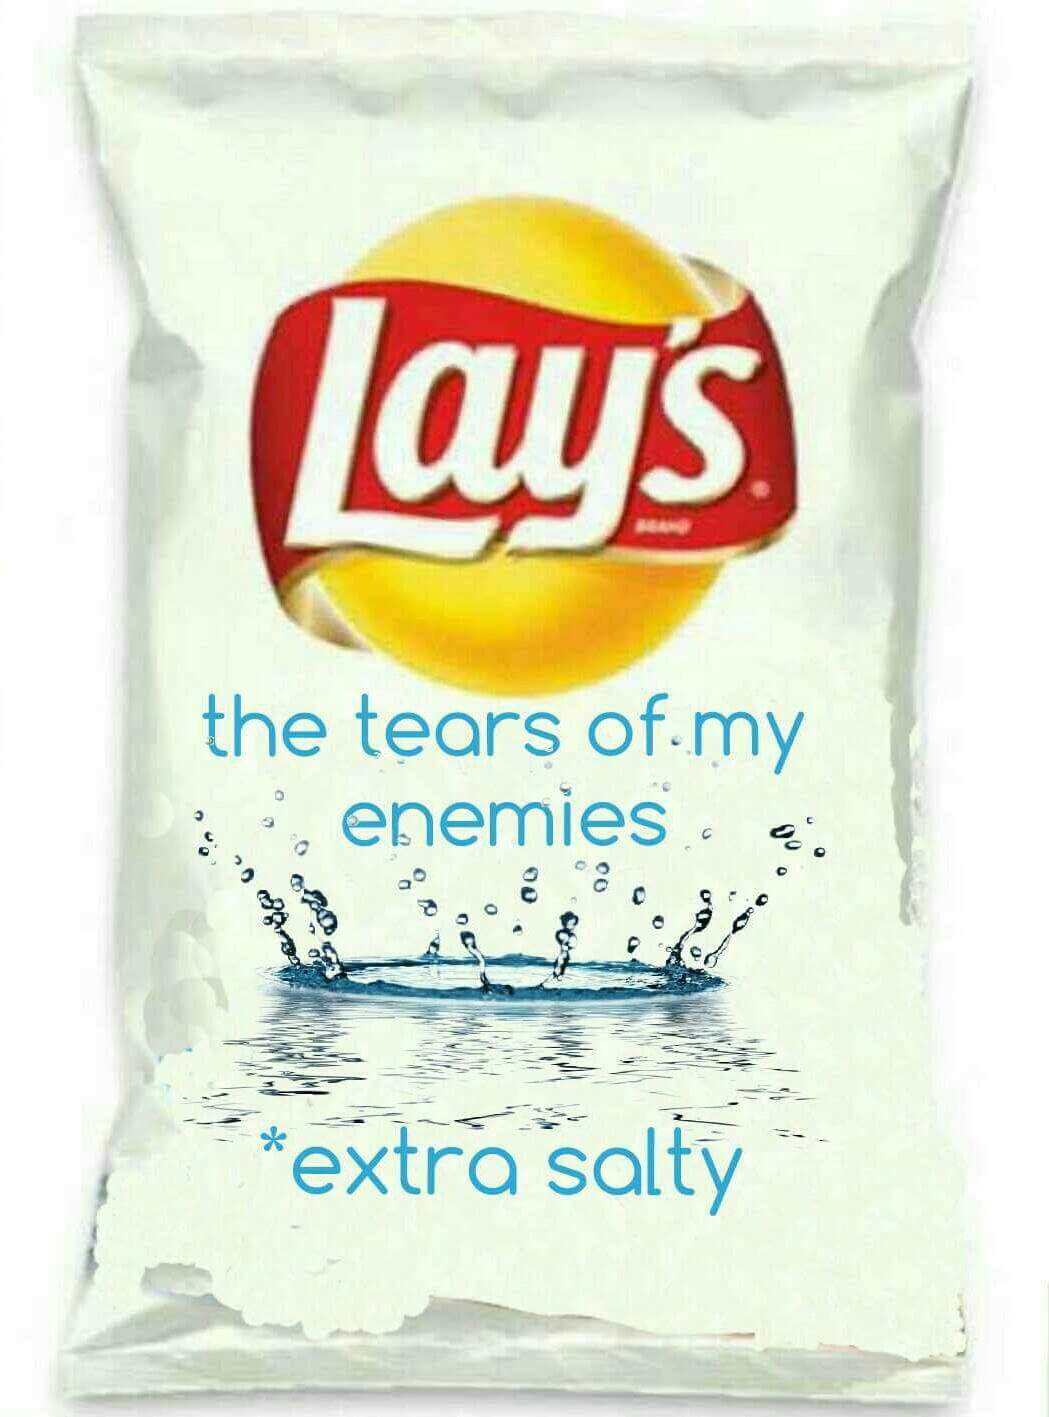 Lay's 'the tears of my enemies' flavored potato chips are delicious.